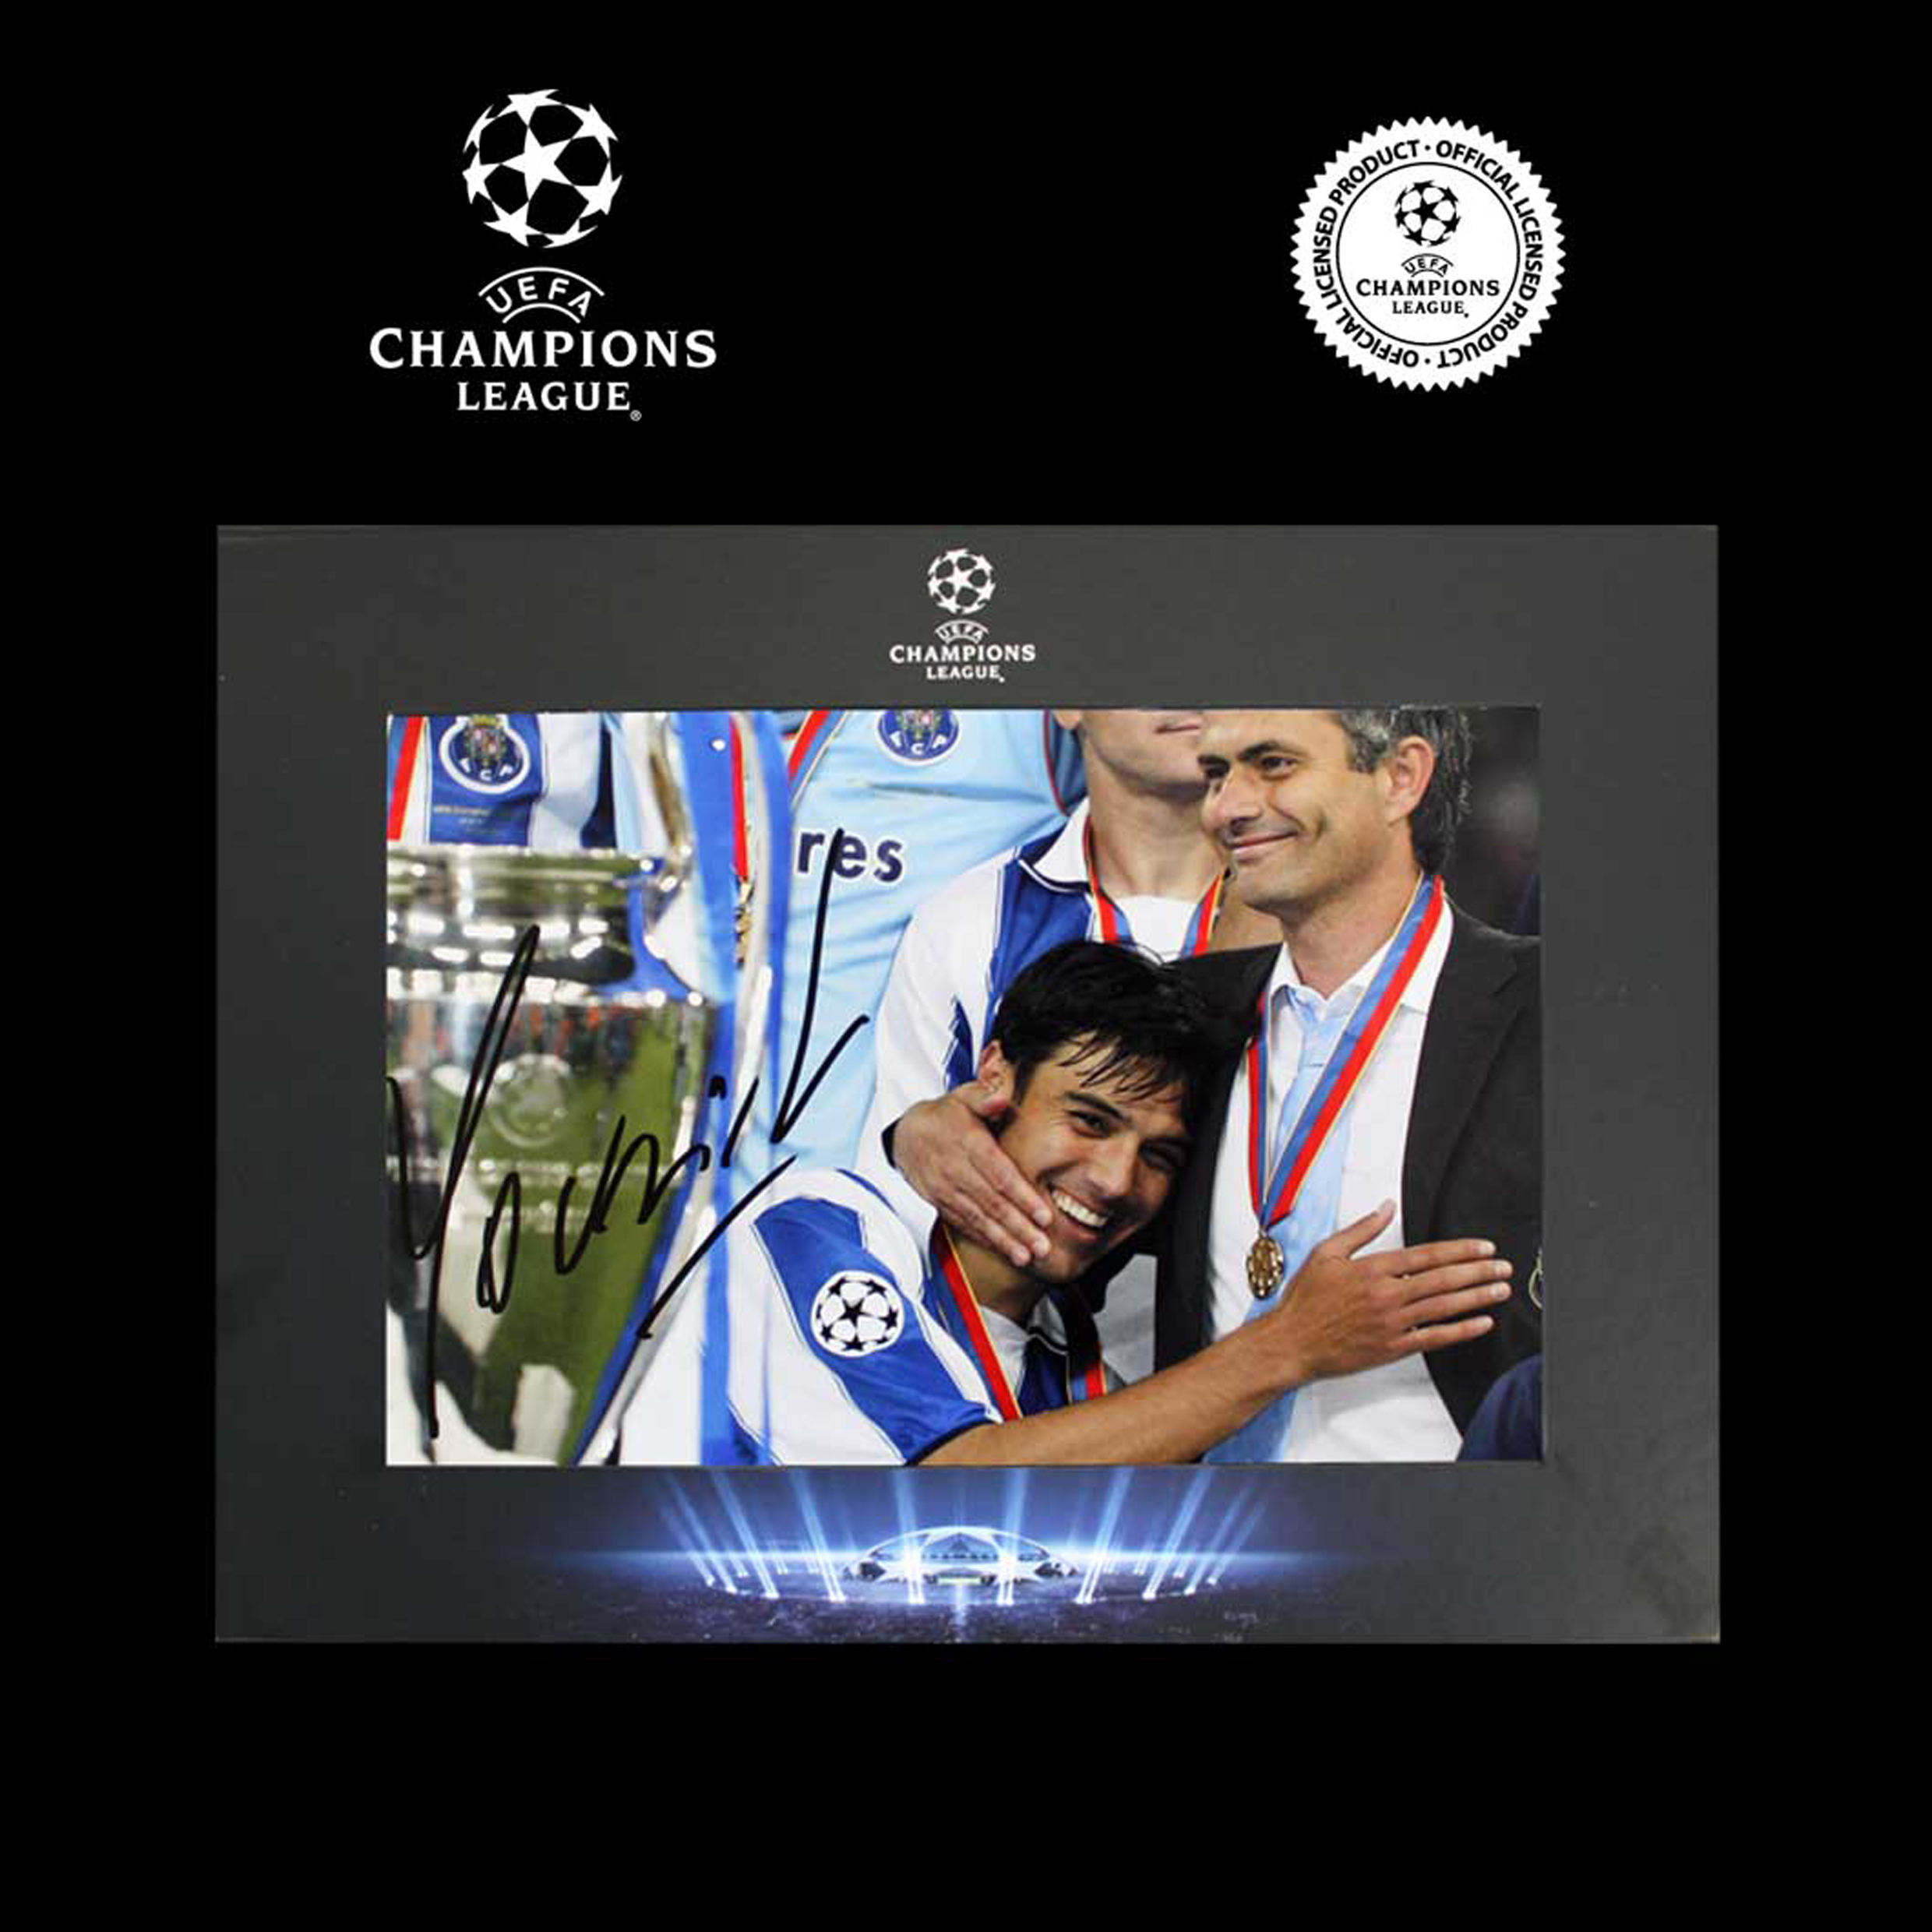 UEFA Champions League Jose Mourinho Signed Photo in Deluxe Packaging: Porto Winners